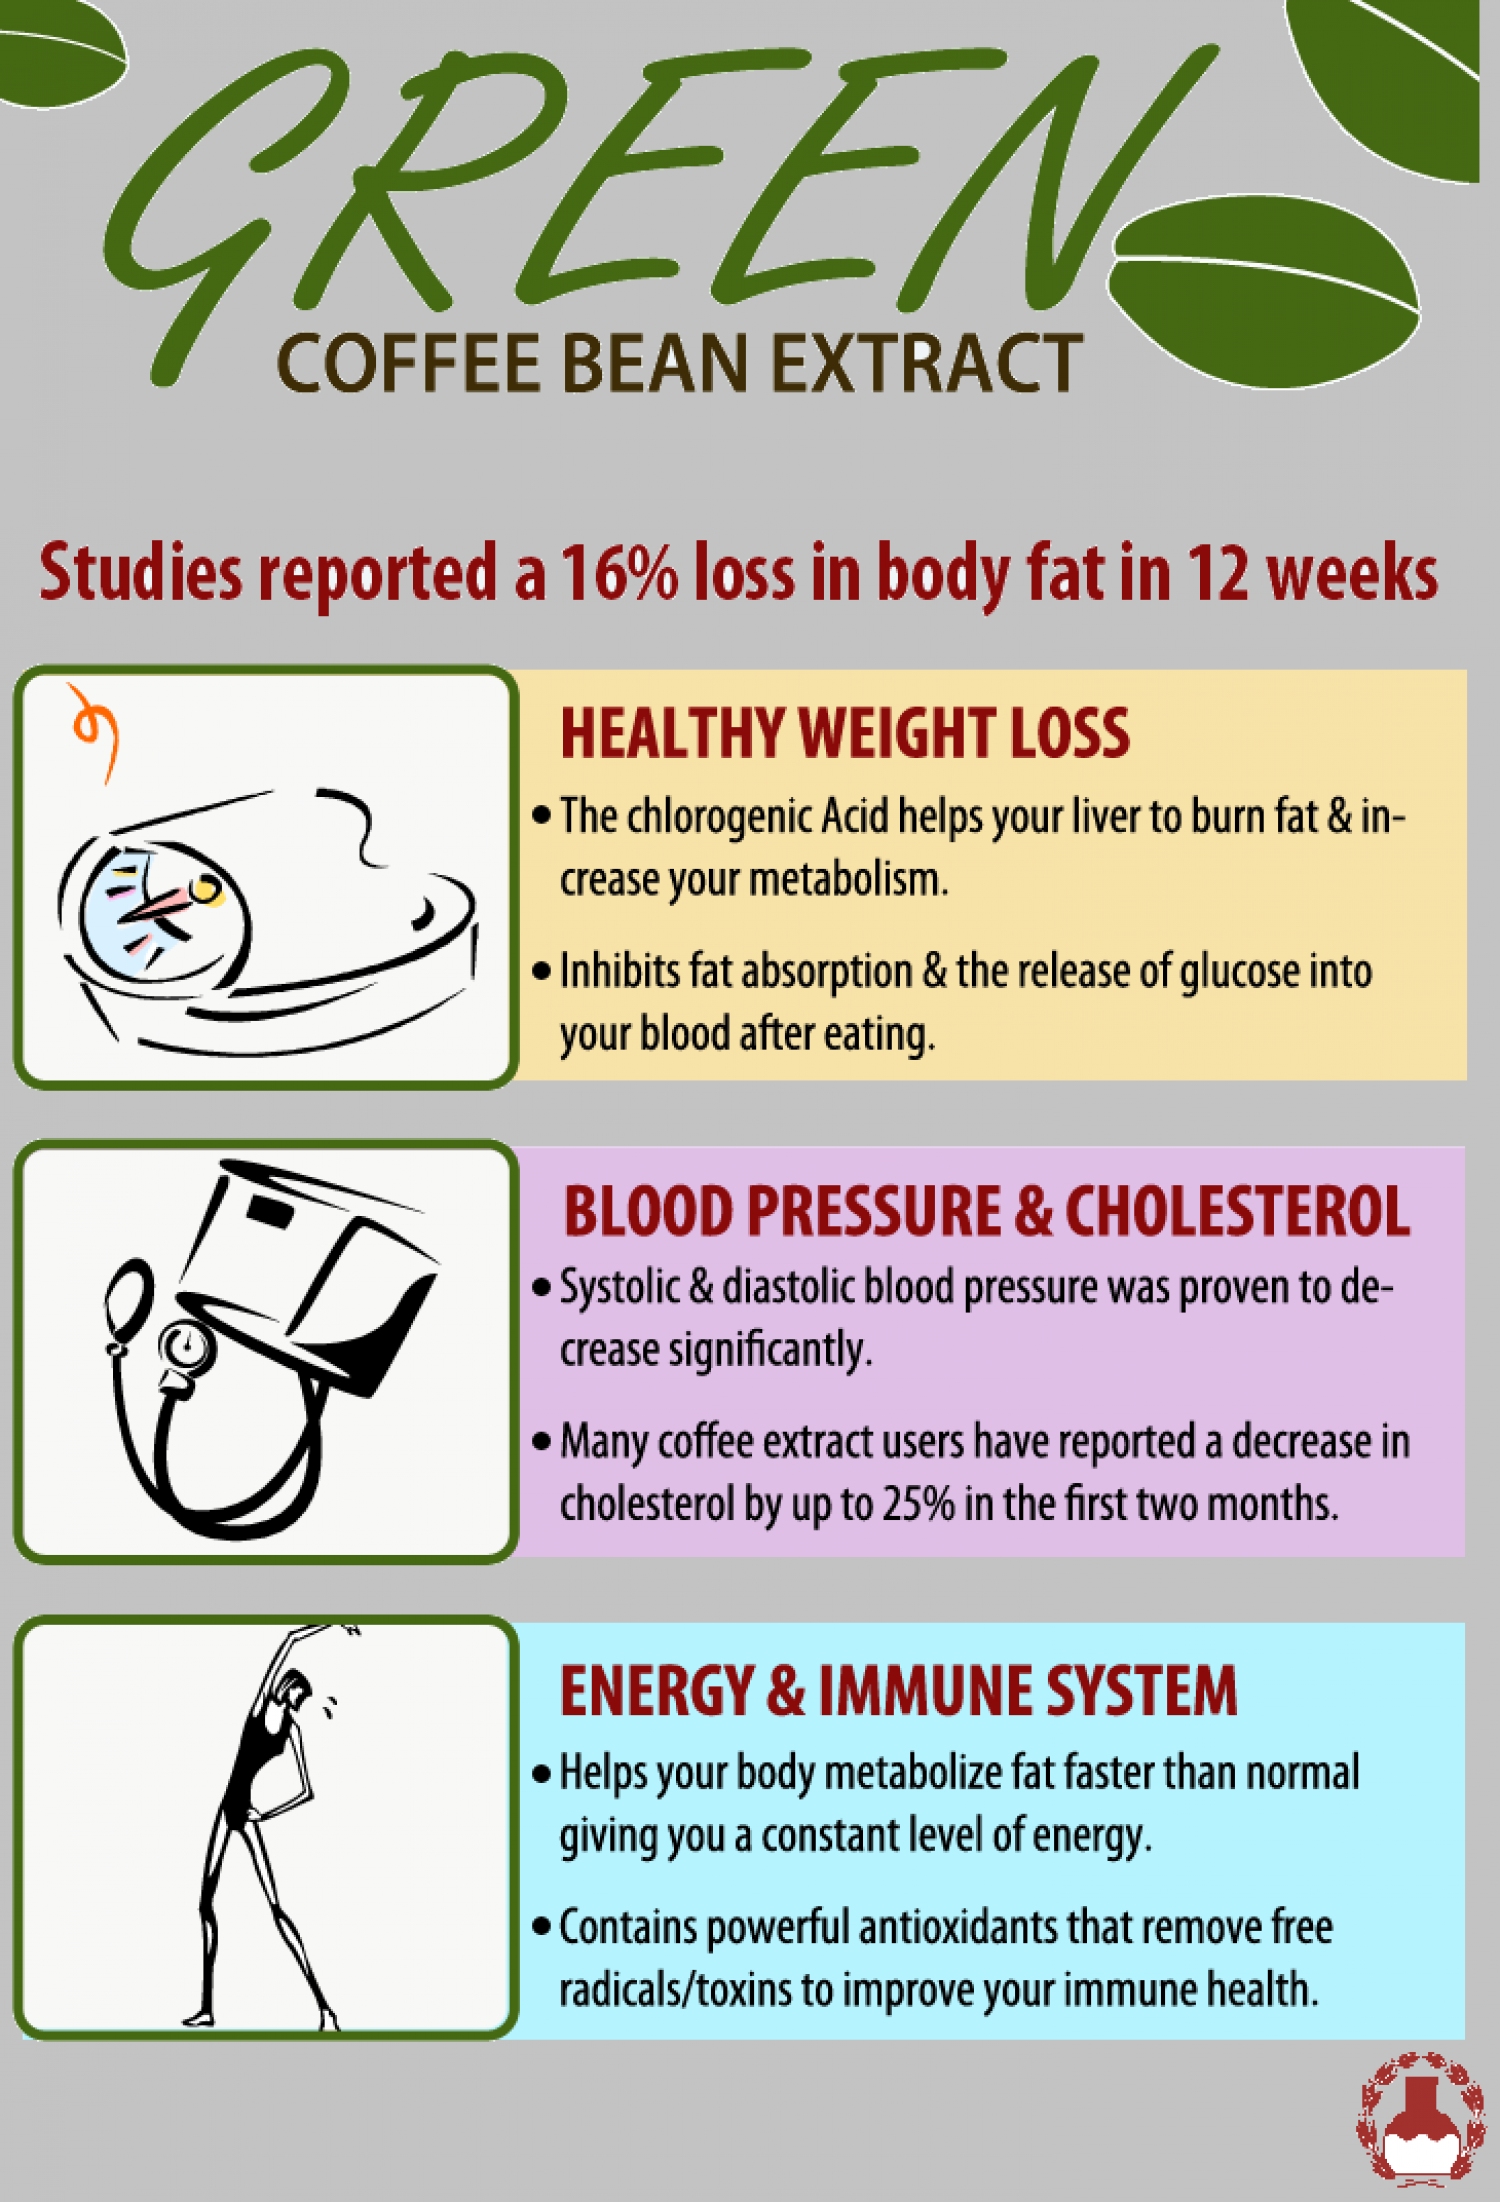 Green Coffee Is Beneficial Infographic